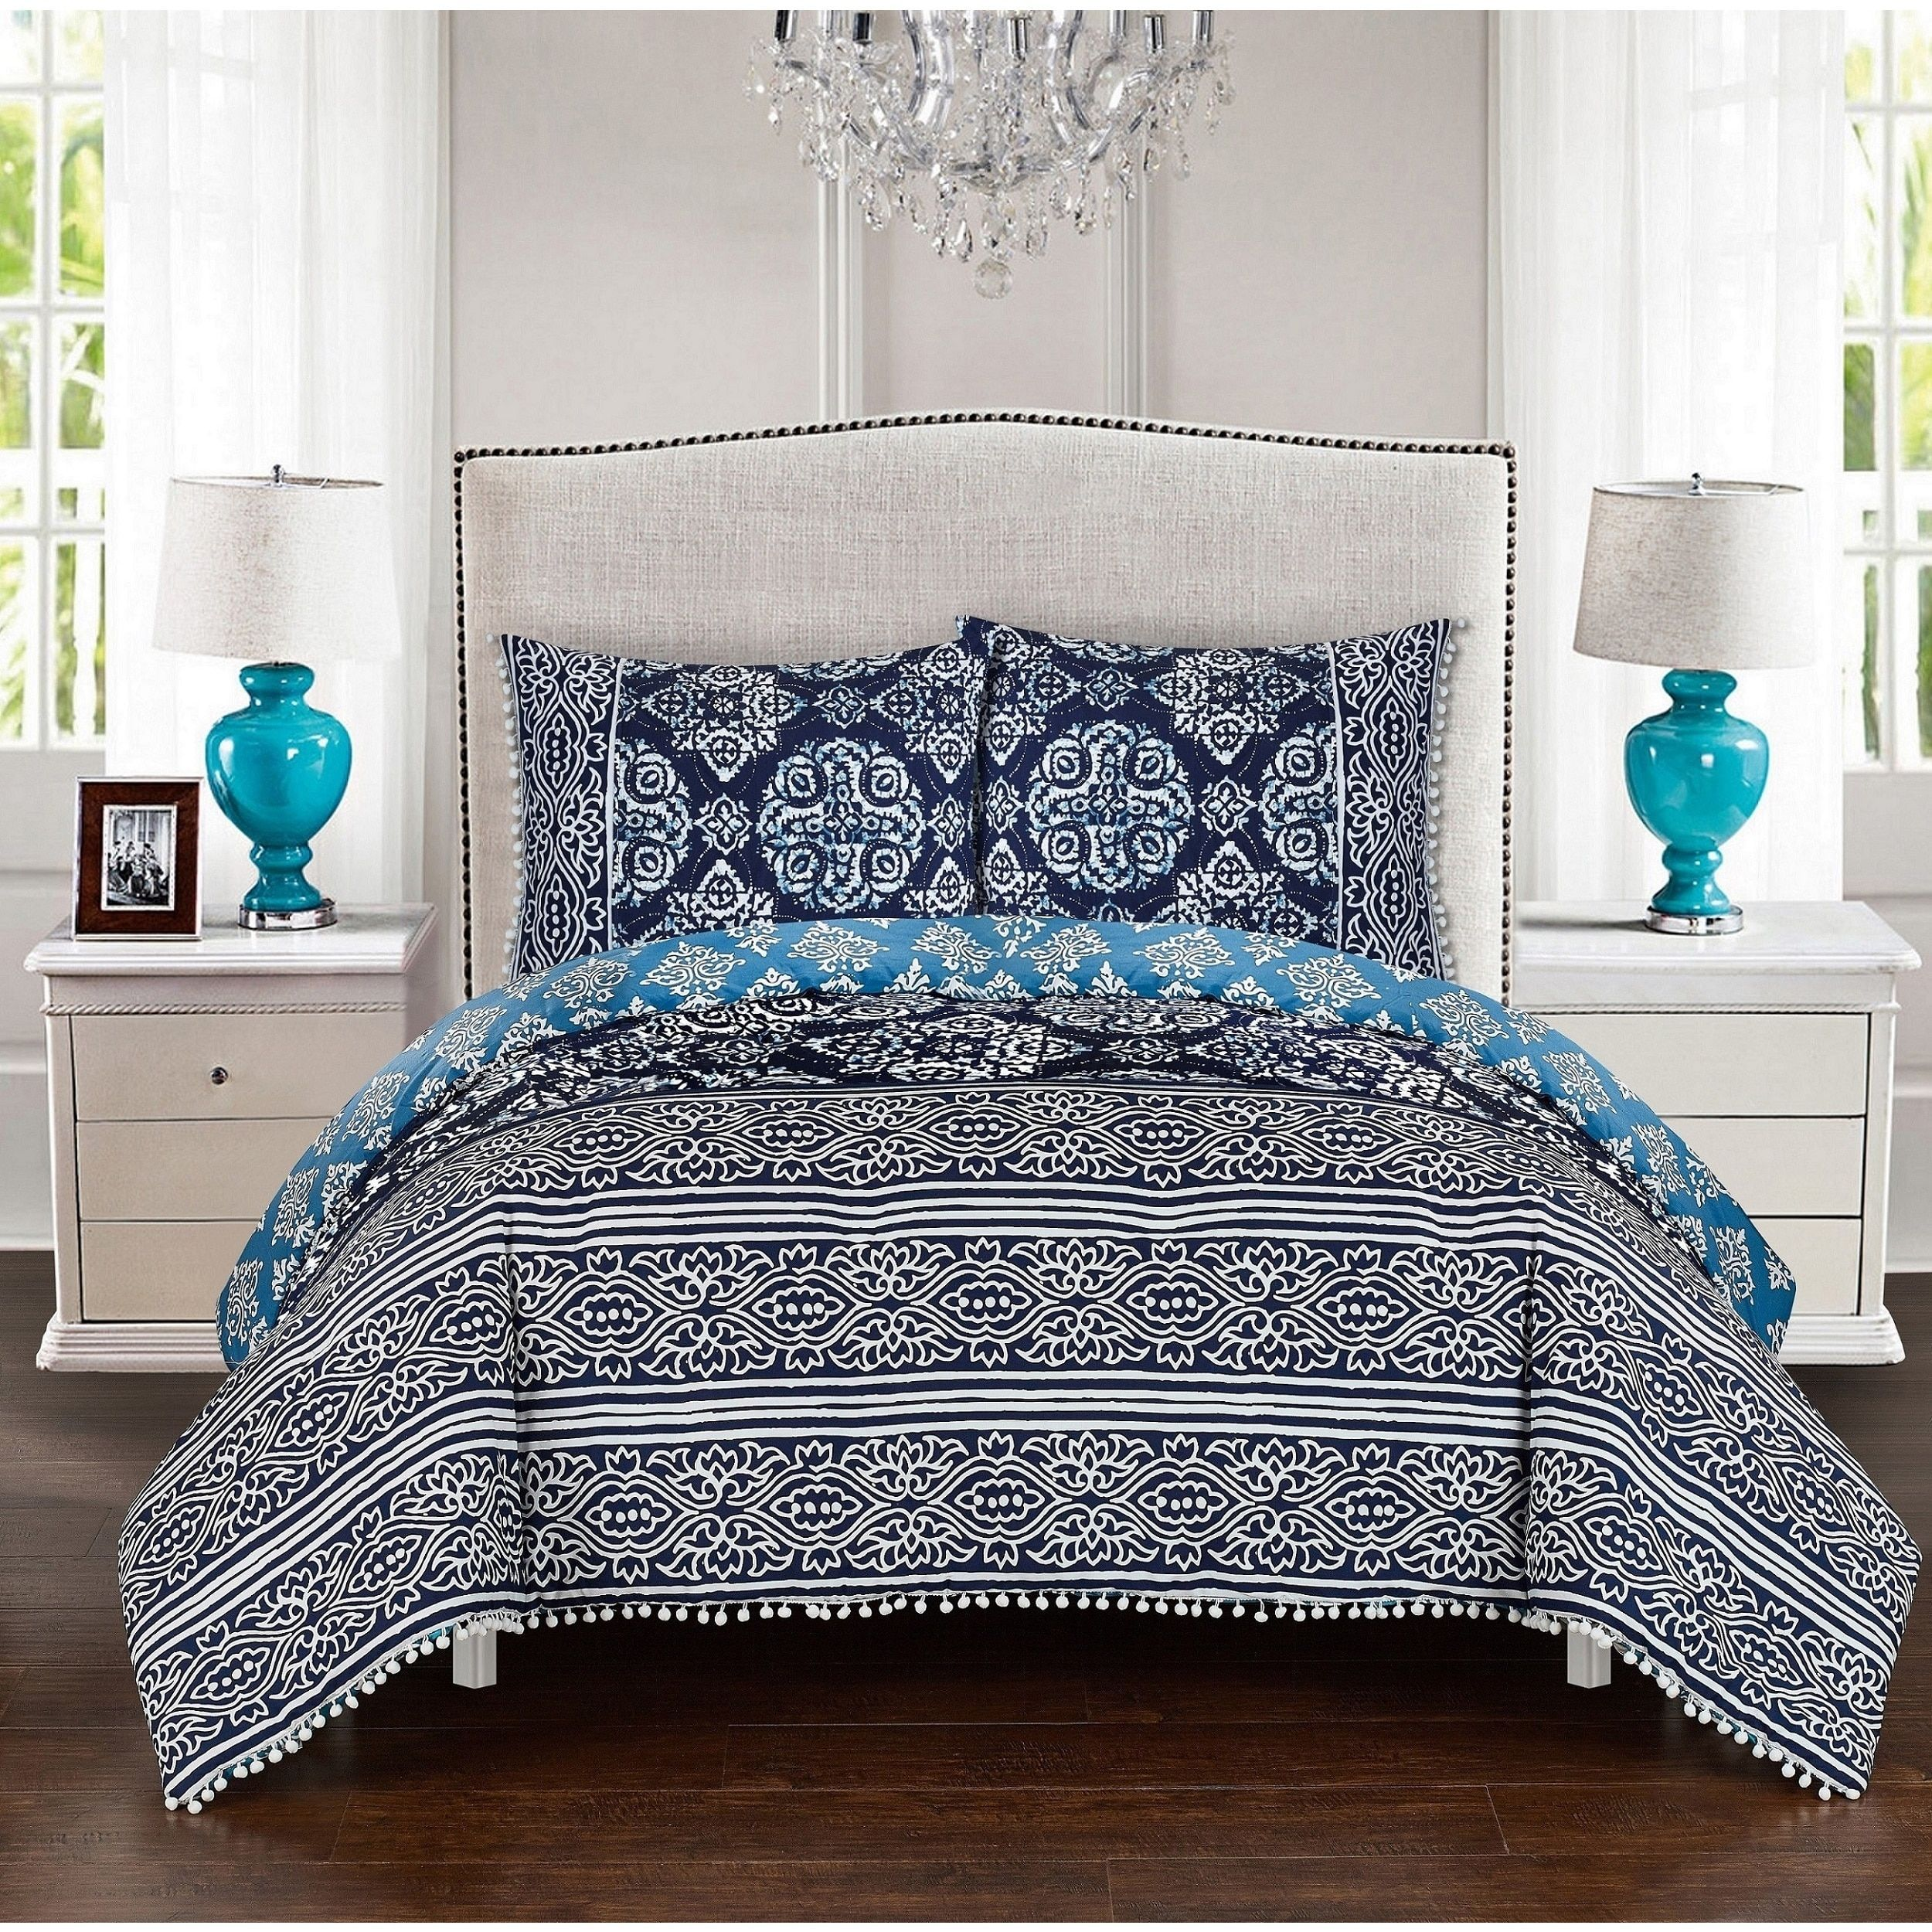 luxbed 3piece peridot navy duvet cover set